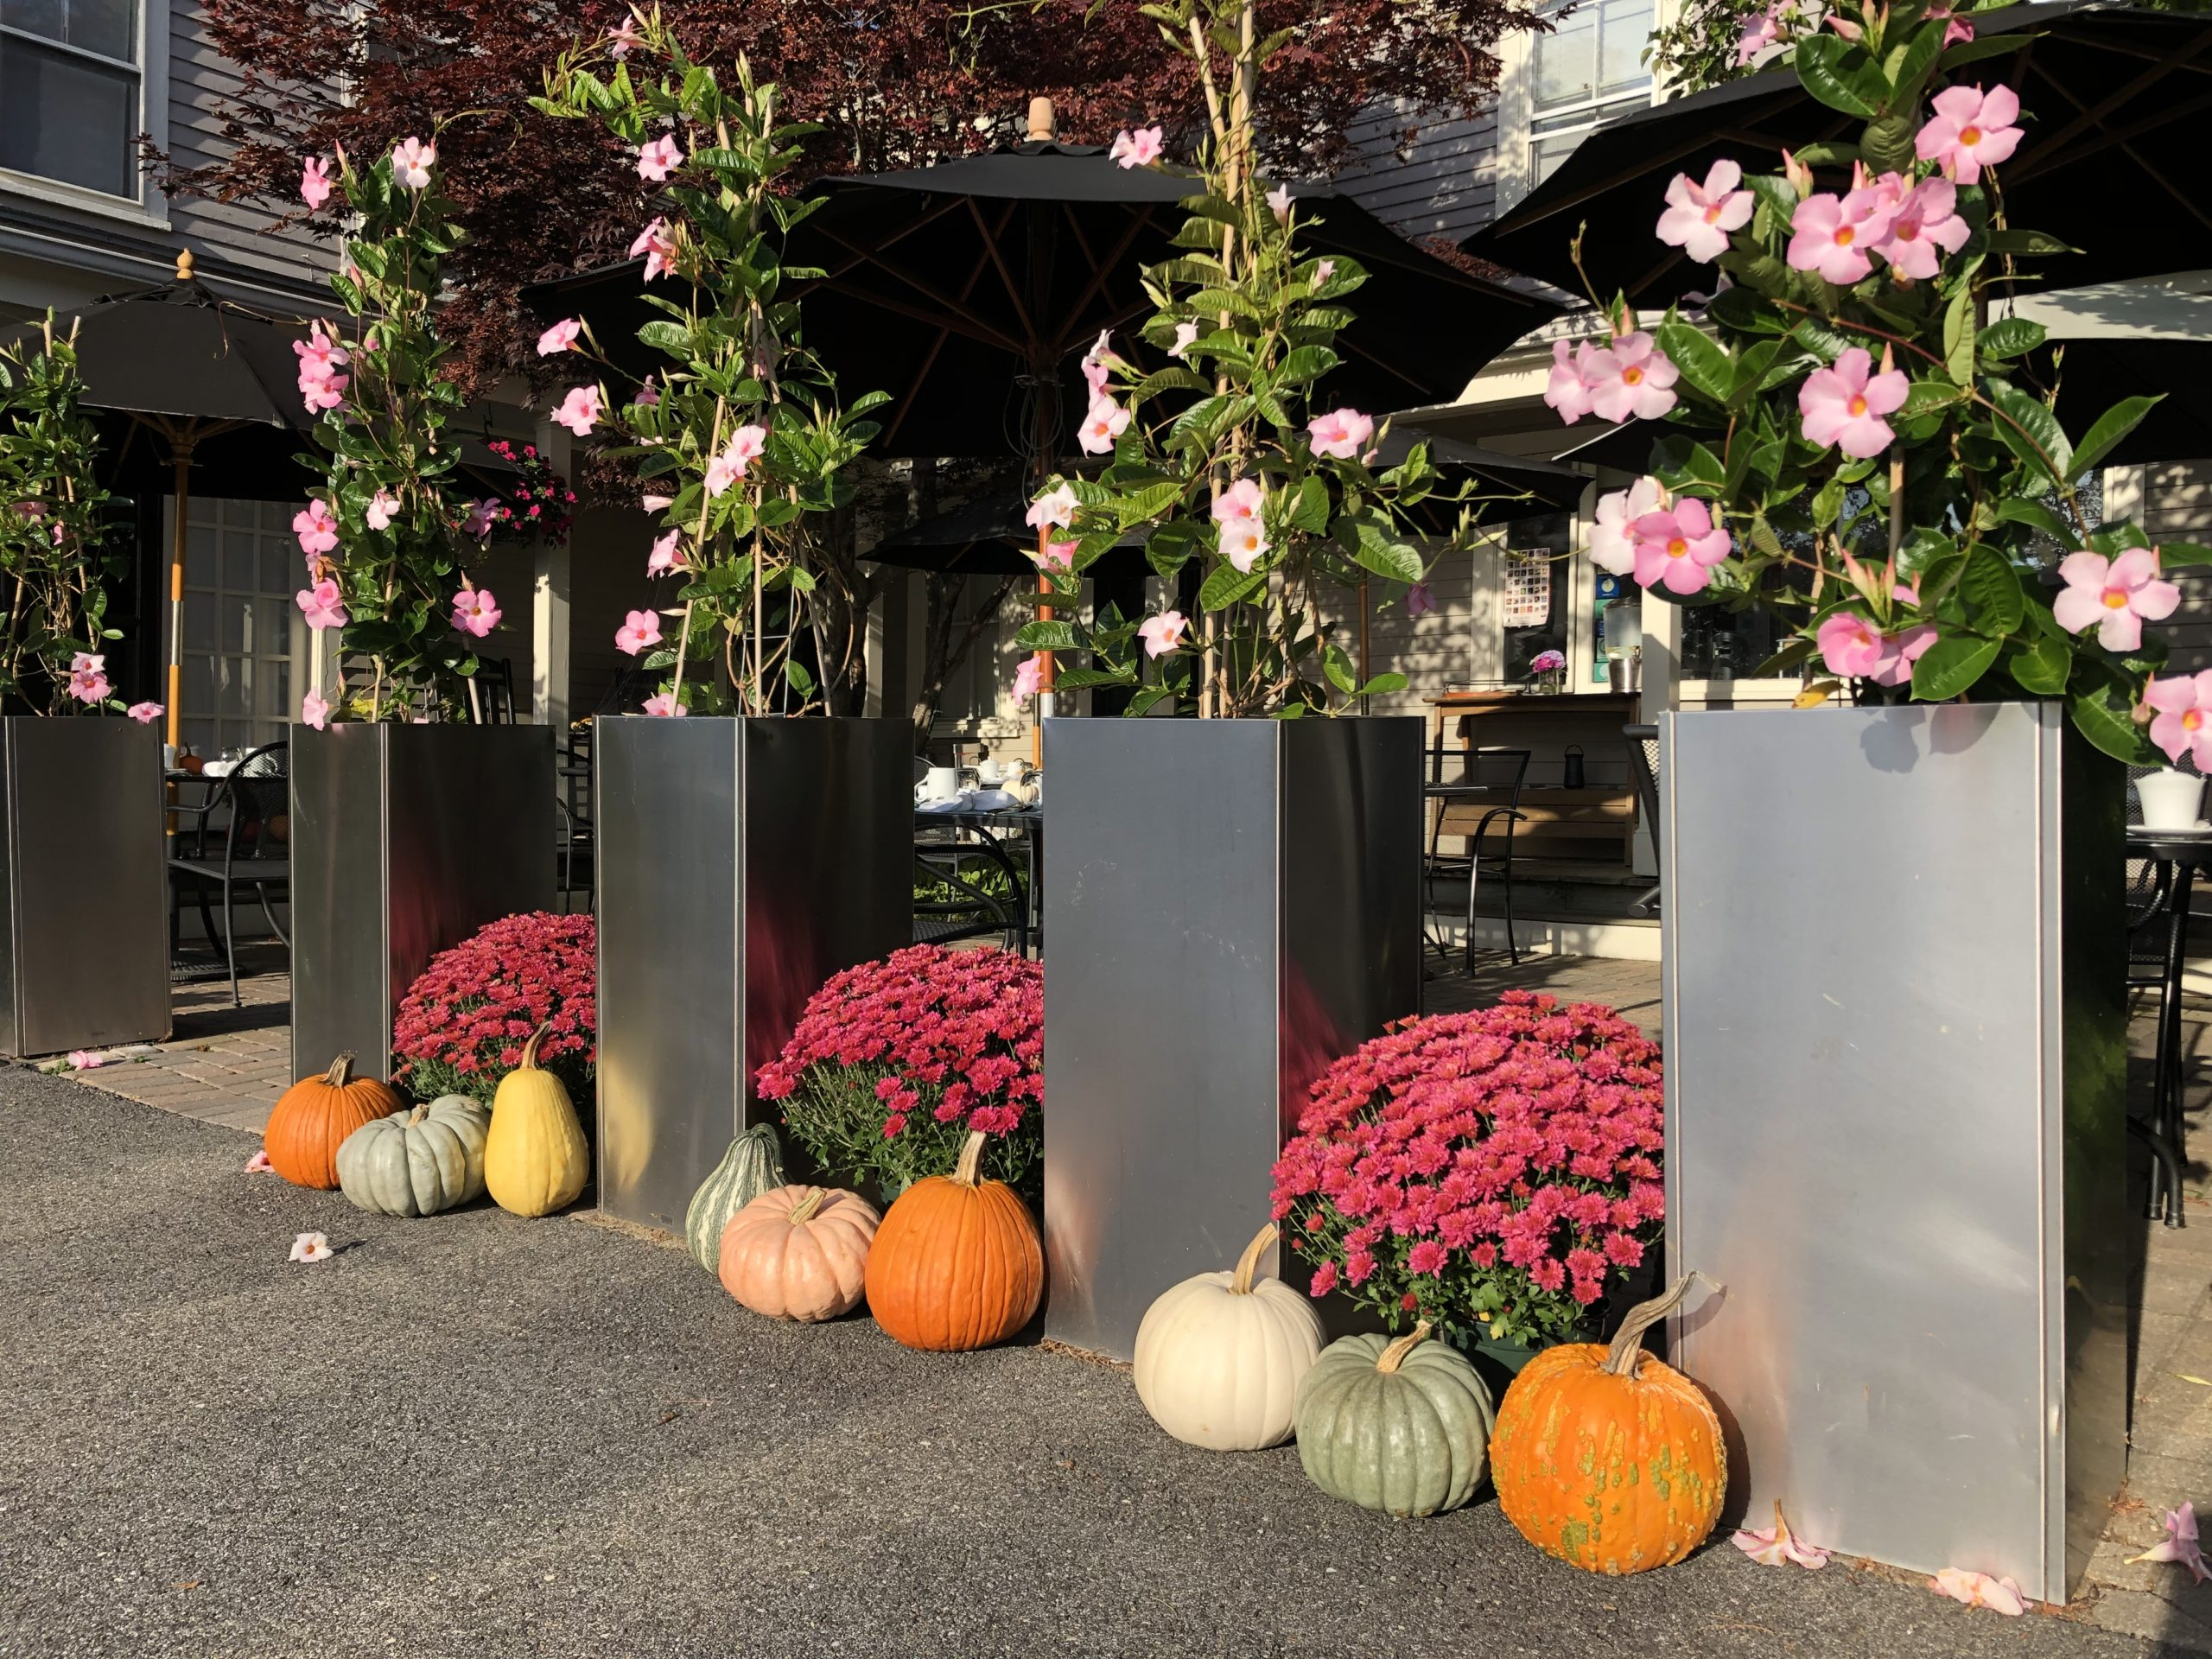 Pumpkins and mums in front of Inn at English Meadows.